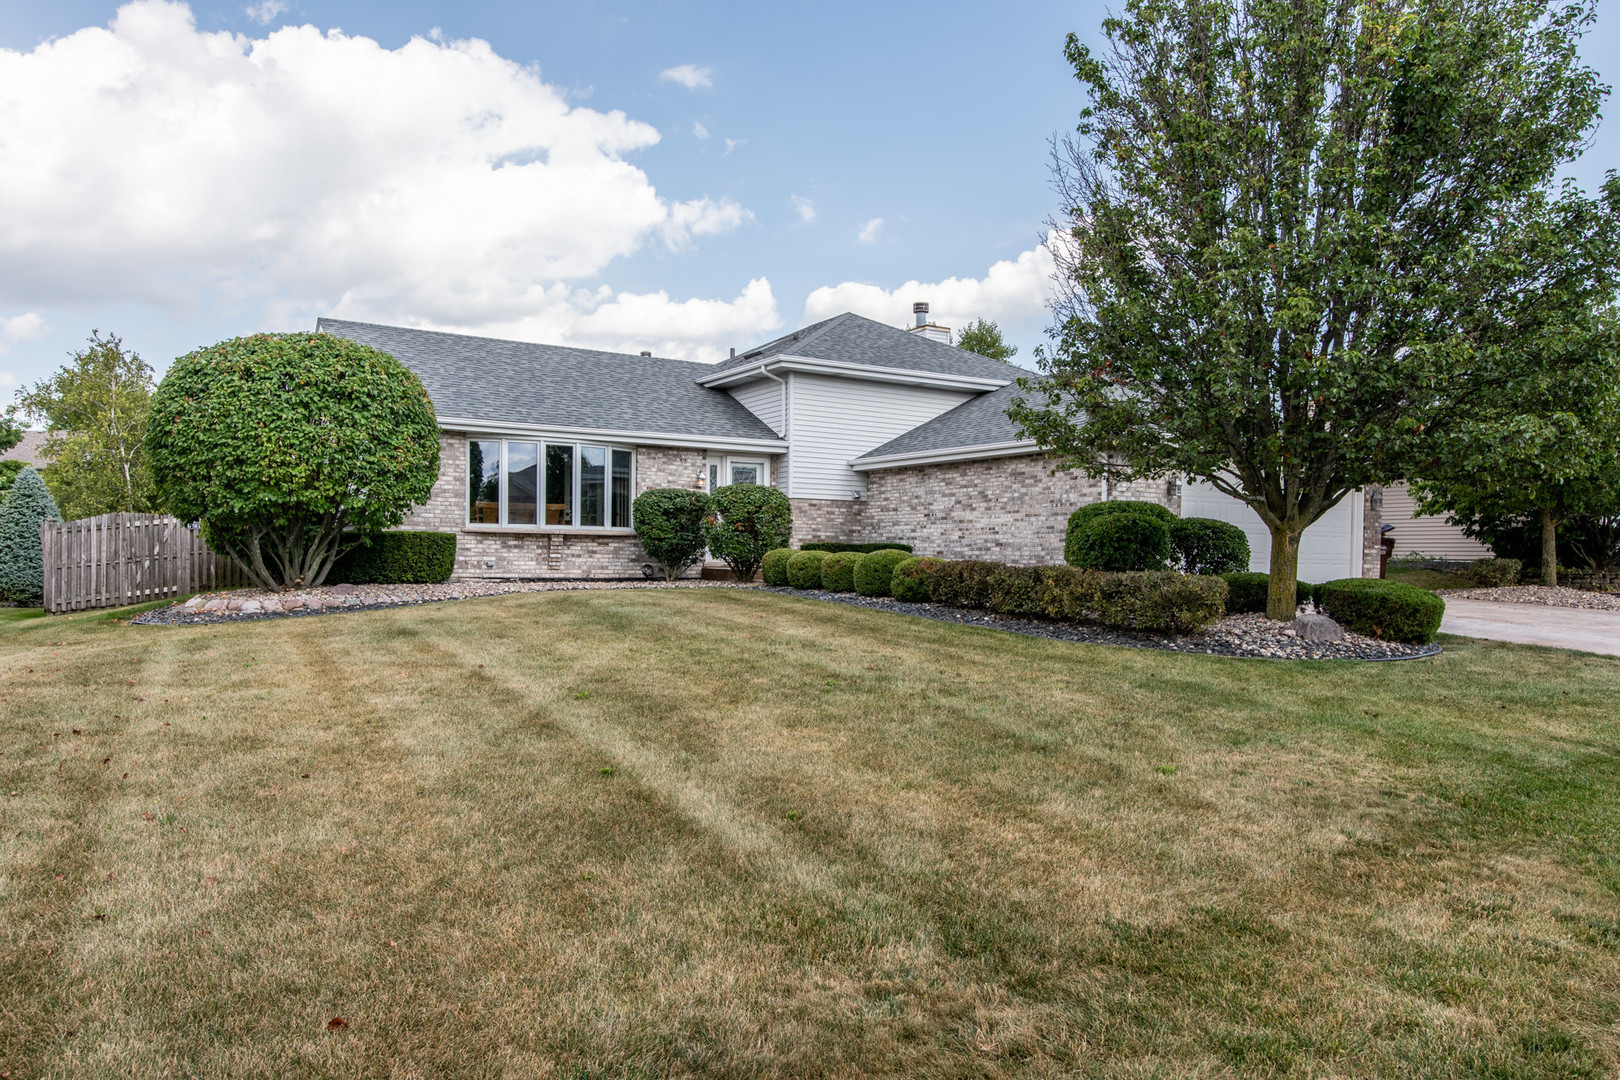 2590 Daniel Lewis Drive, New Lenox in Will County, IL 60451 Home for Sale